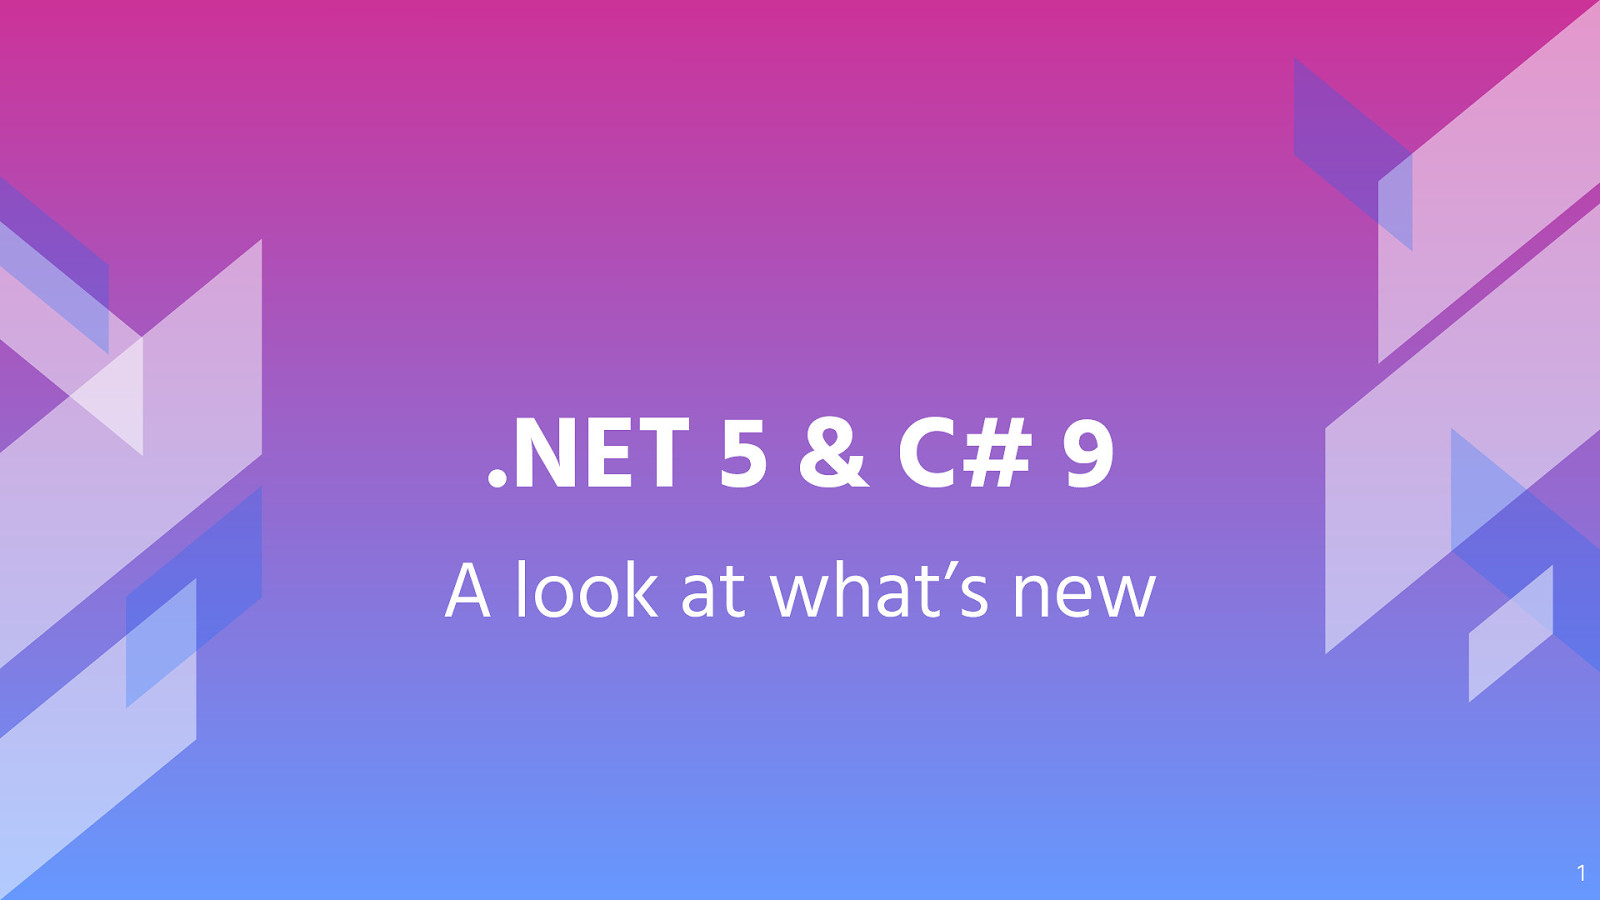 .NET 5 & C# 9 - A look at what's new